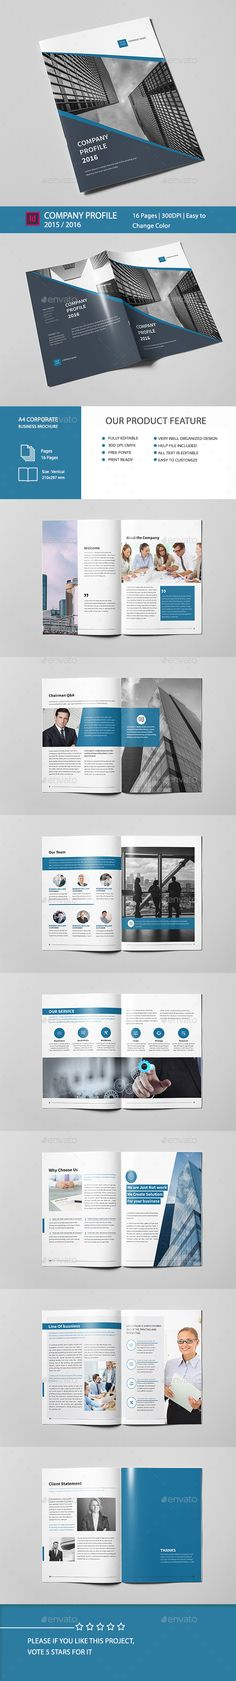 Company Profile Brochure